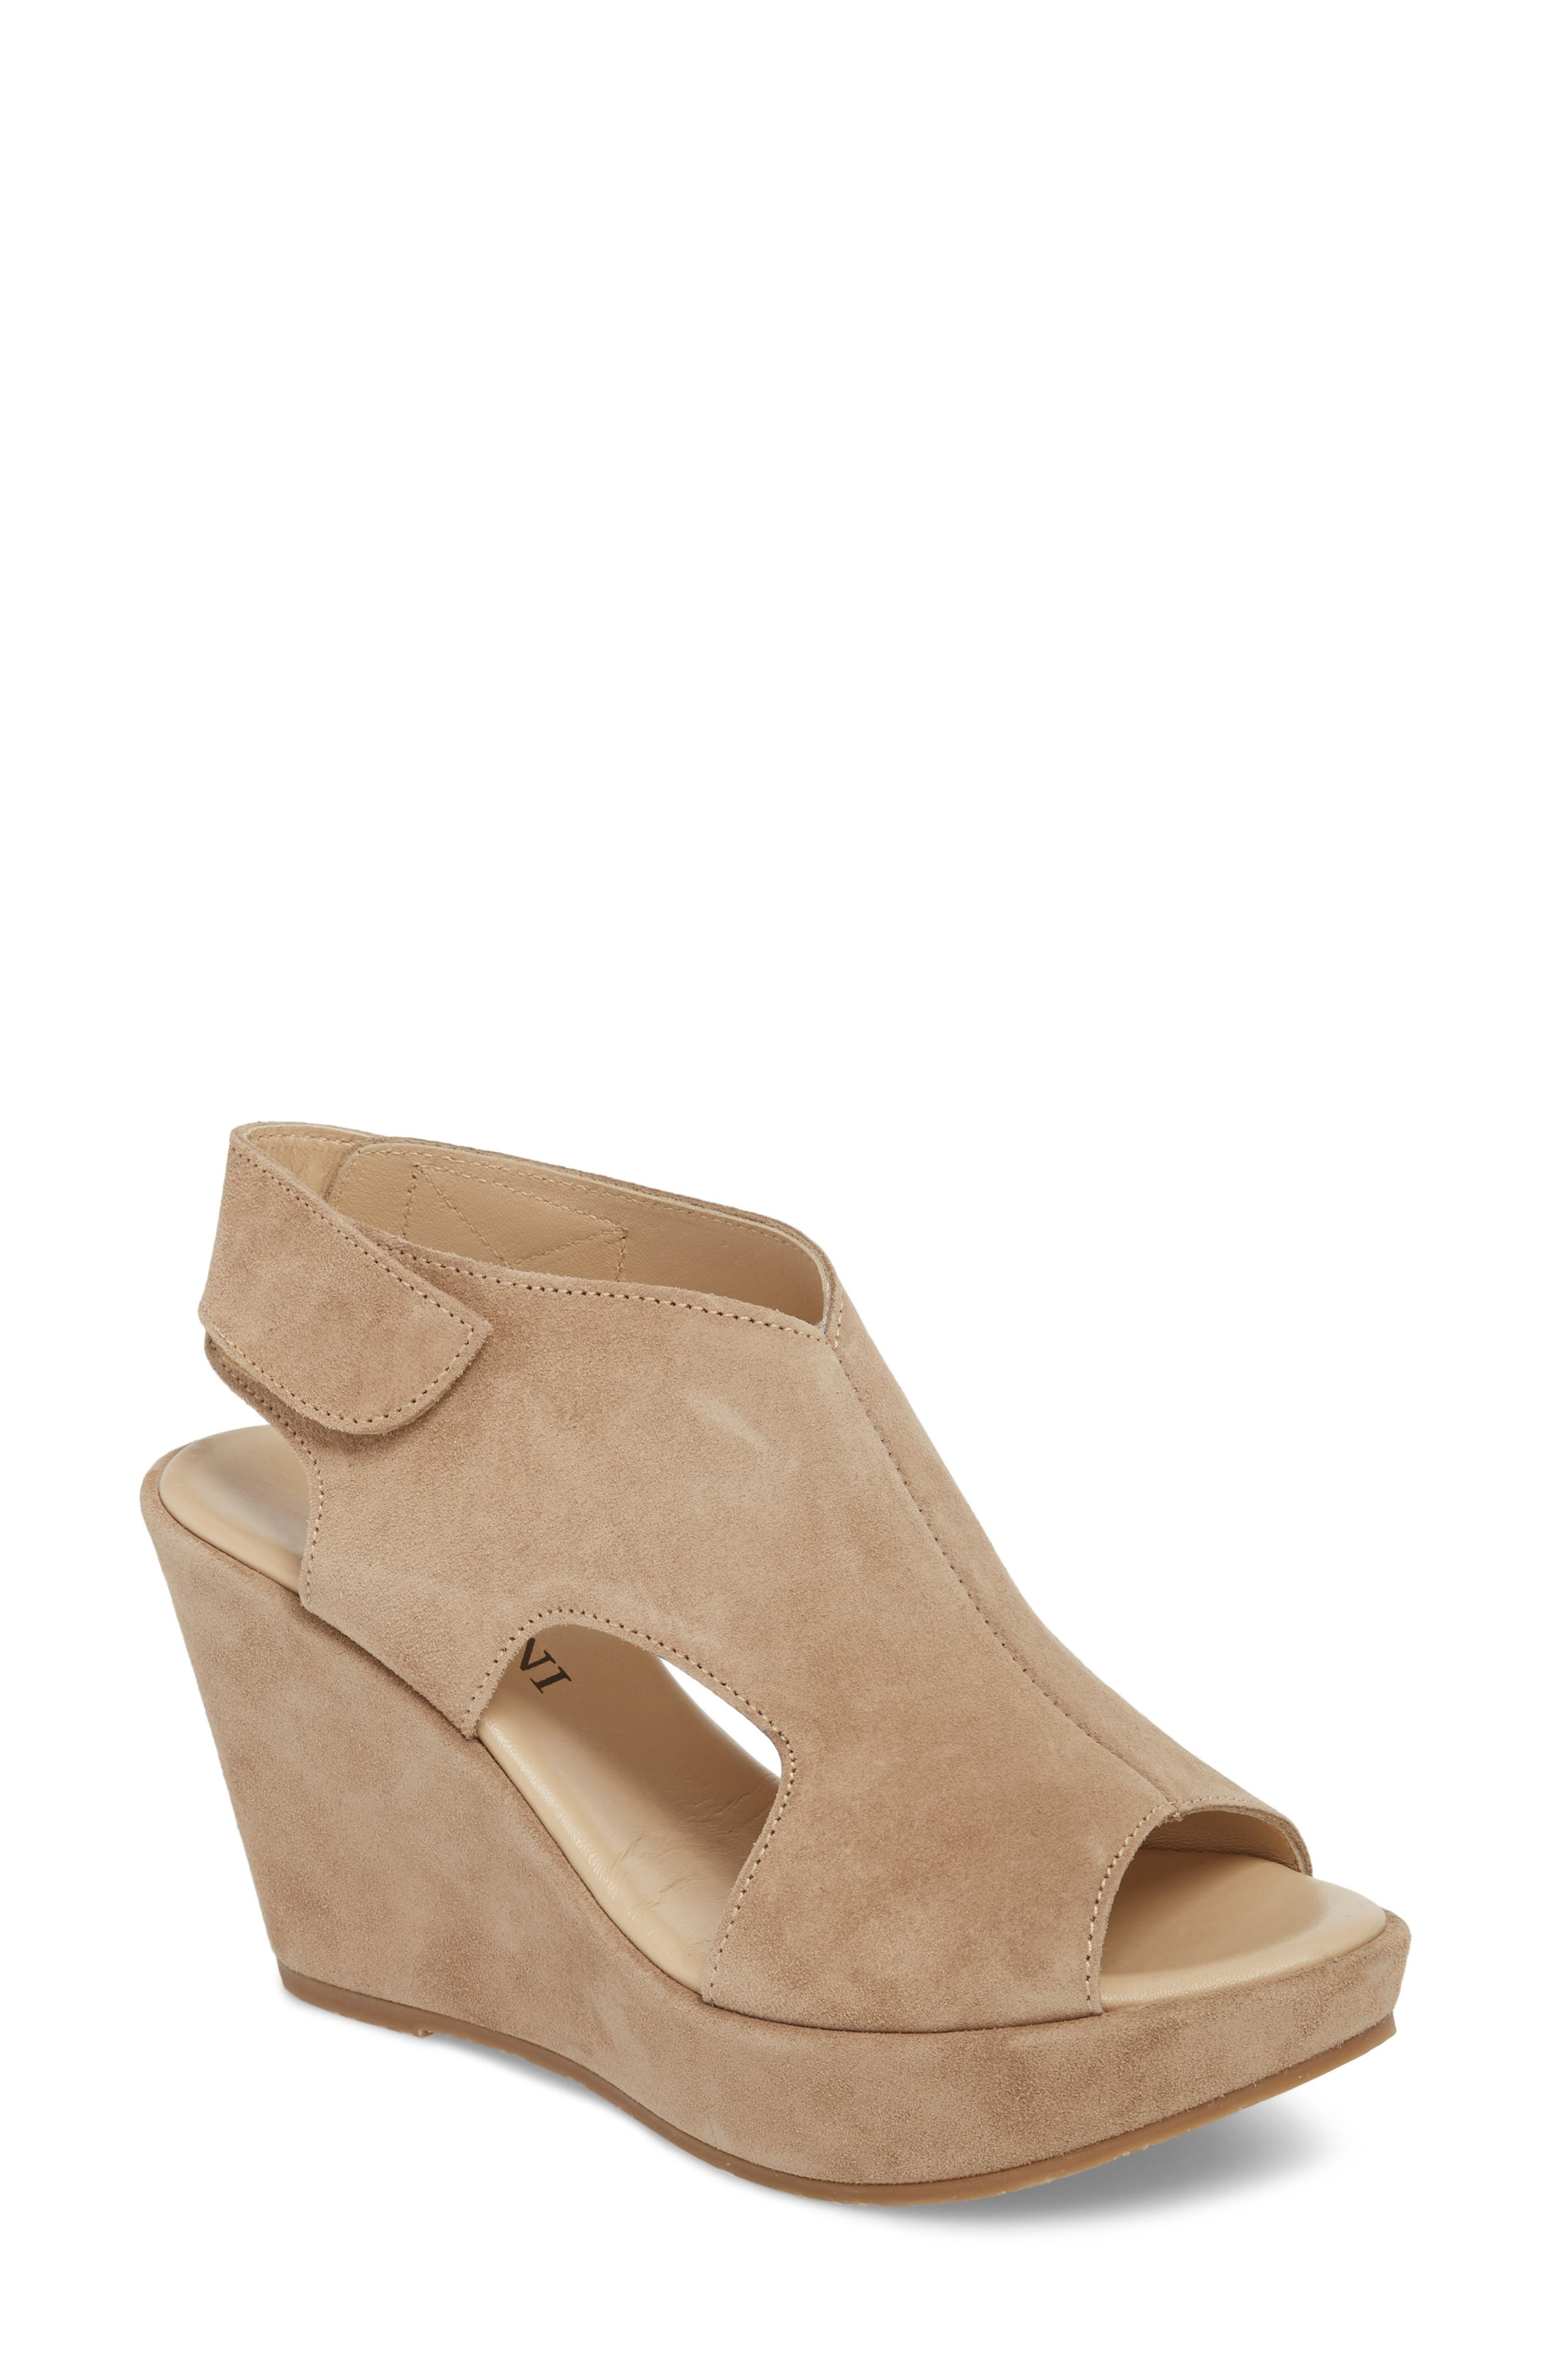 Reed Wedge Sandal,                             Main thumbnail 1, color,                             Corda Taupe Suede